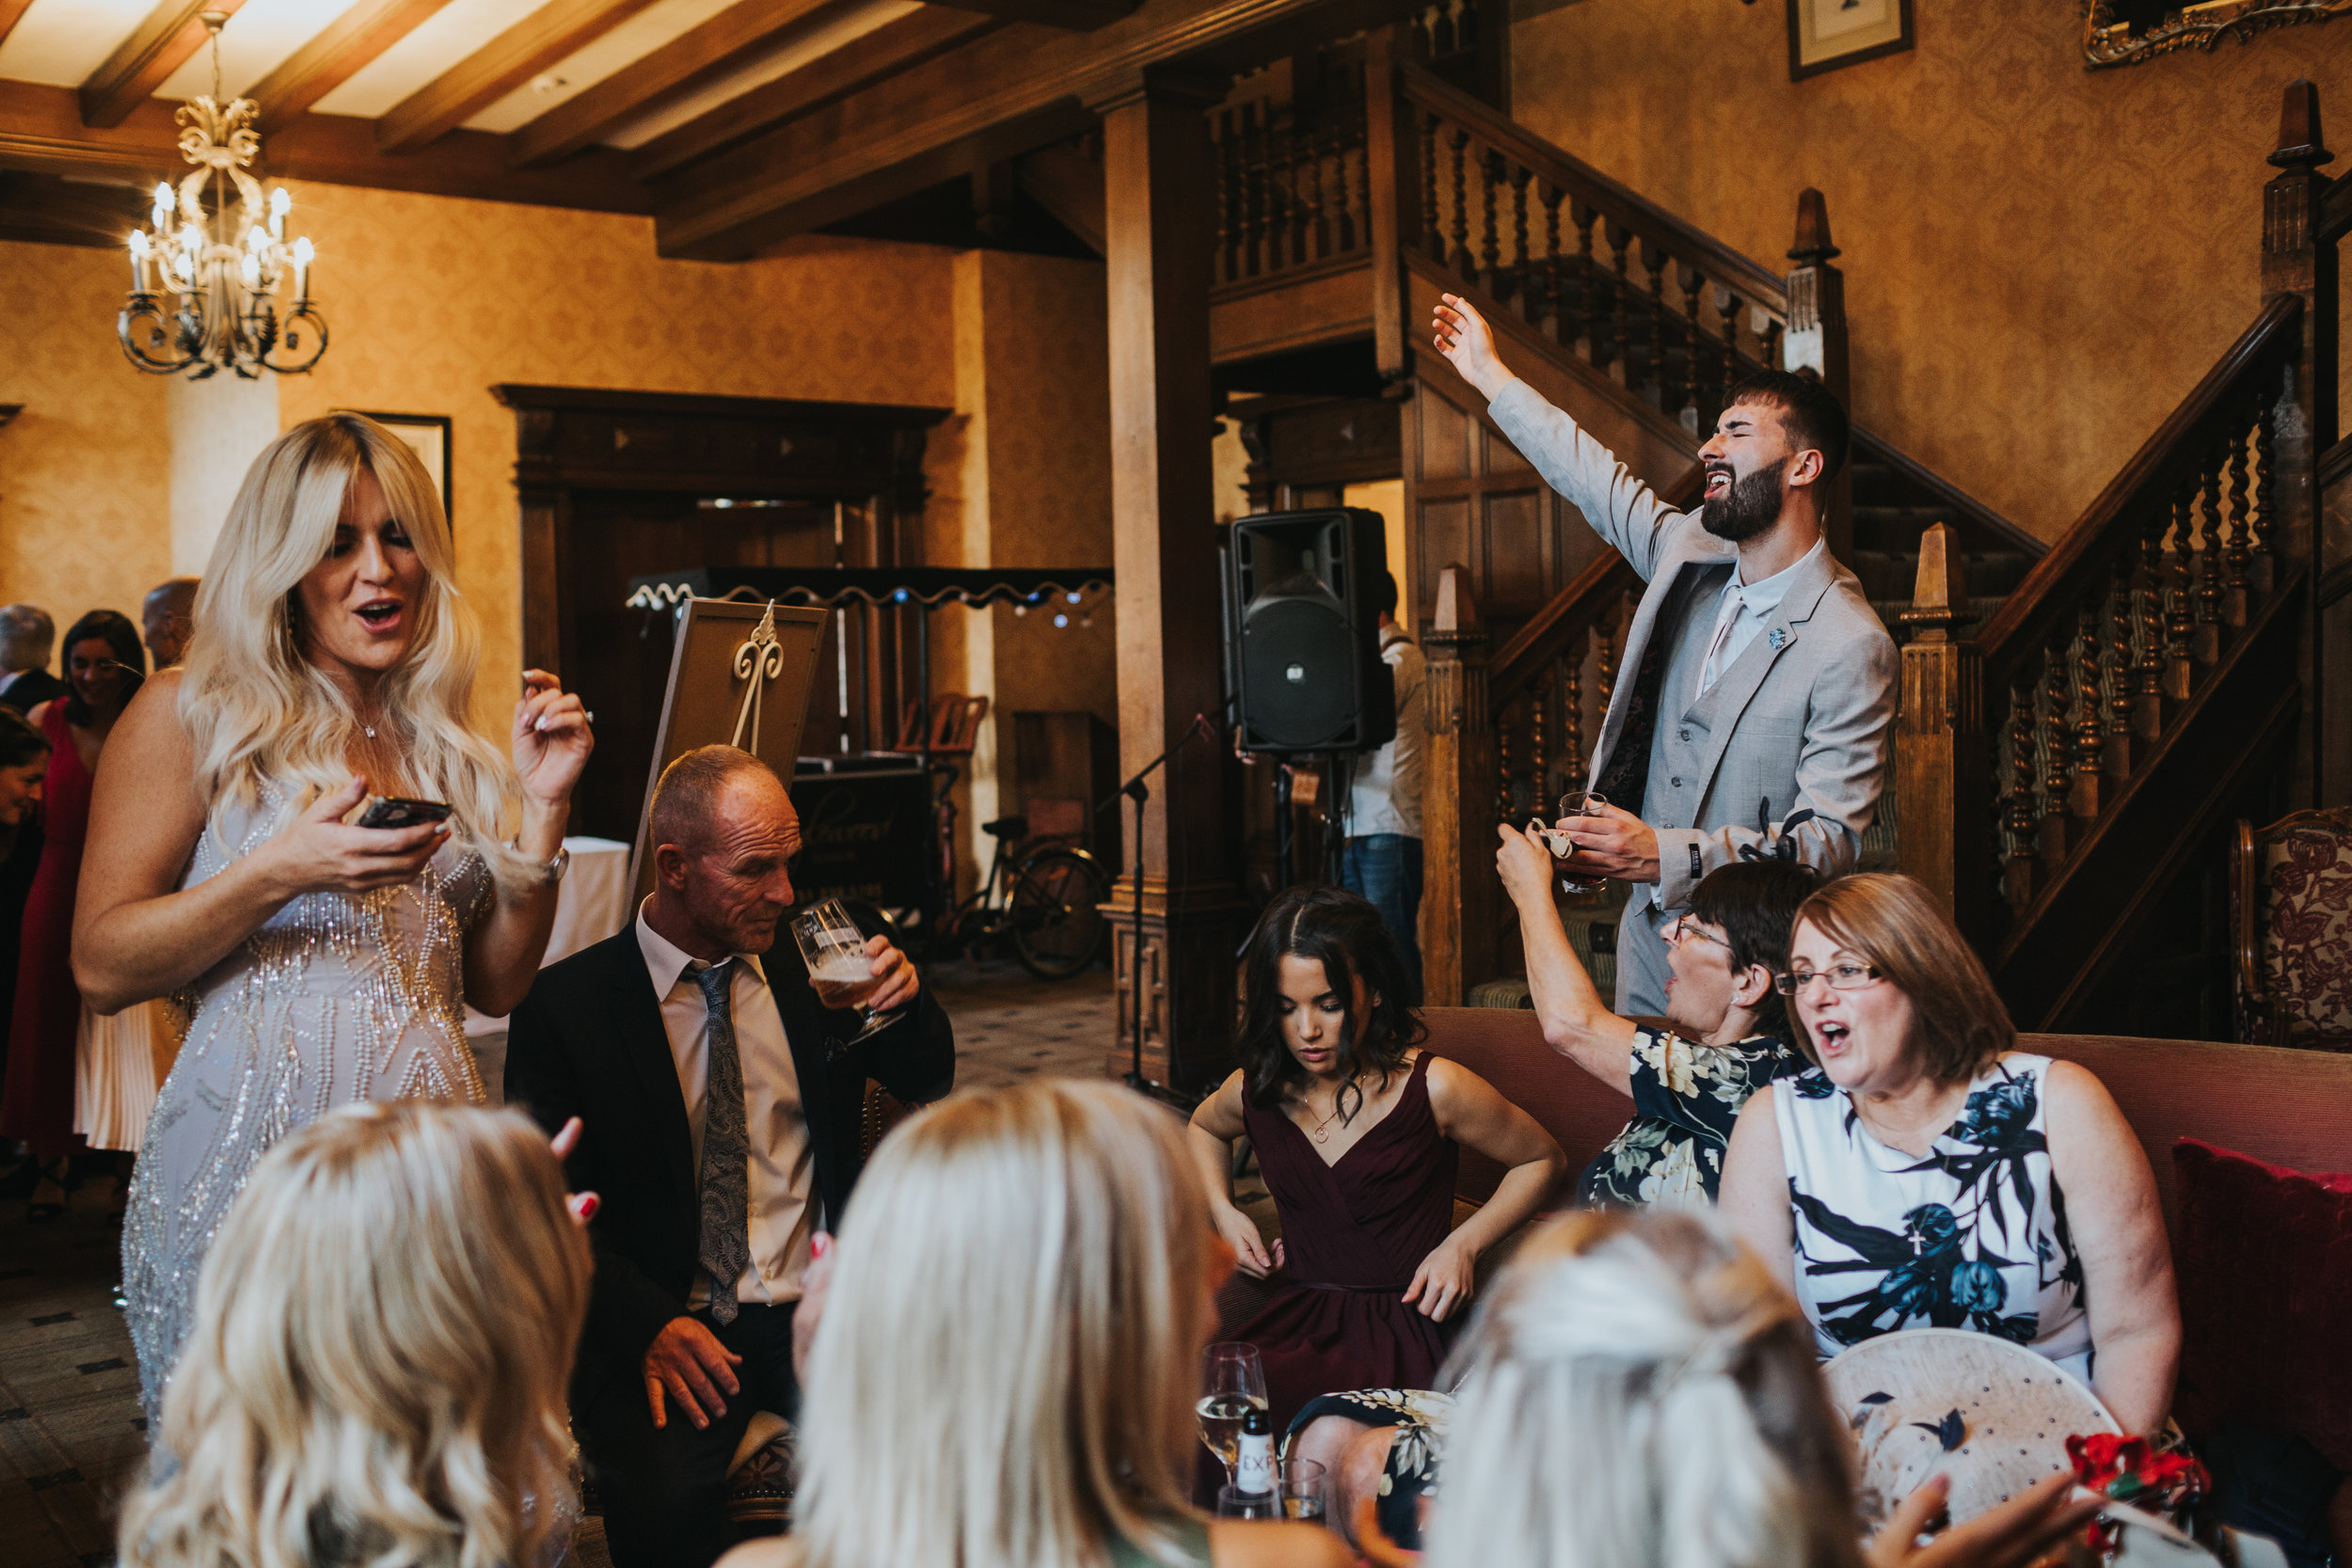 Wedding guests sing together.